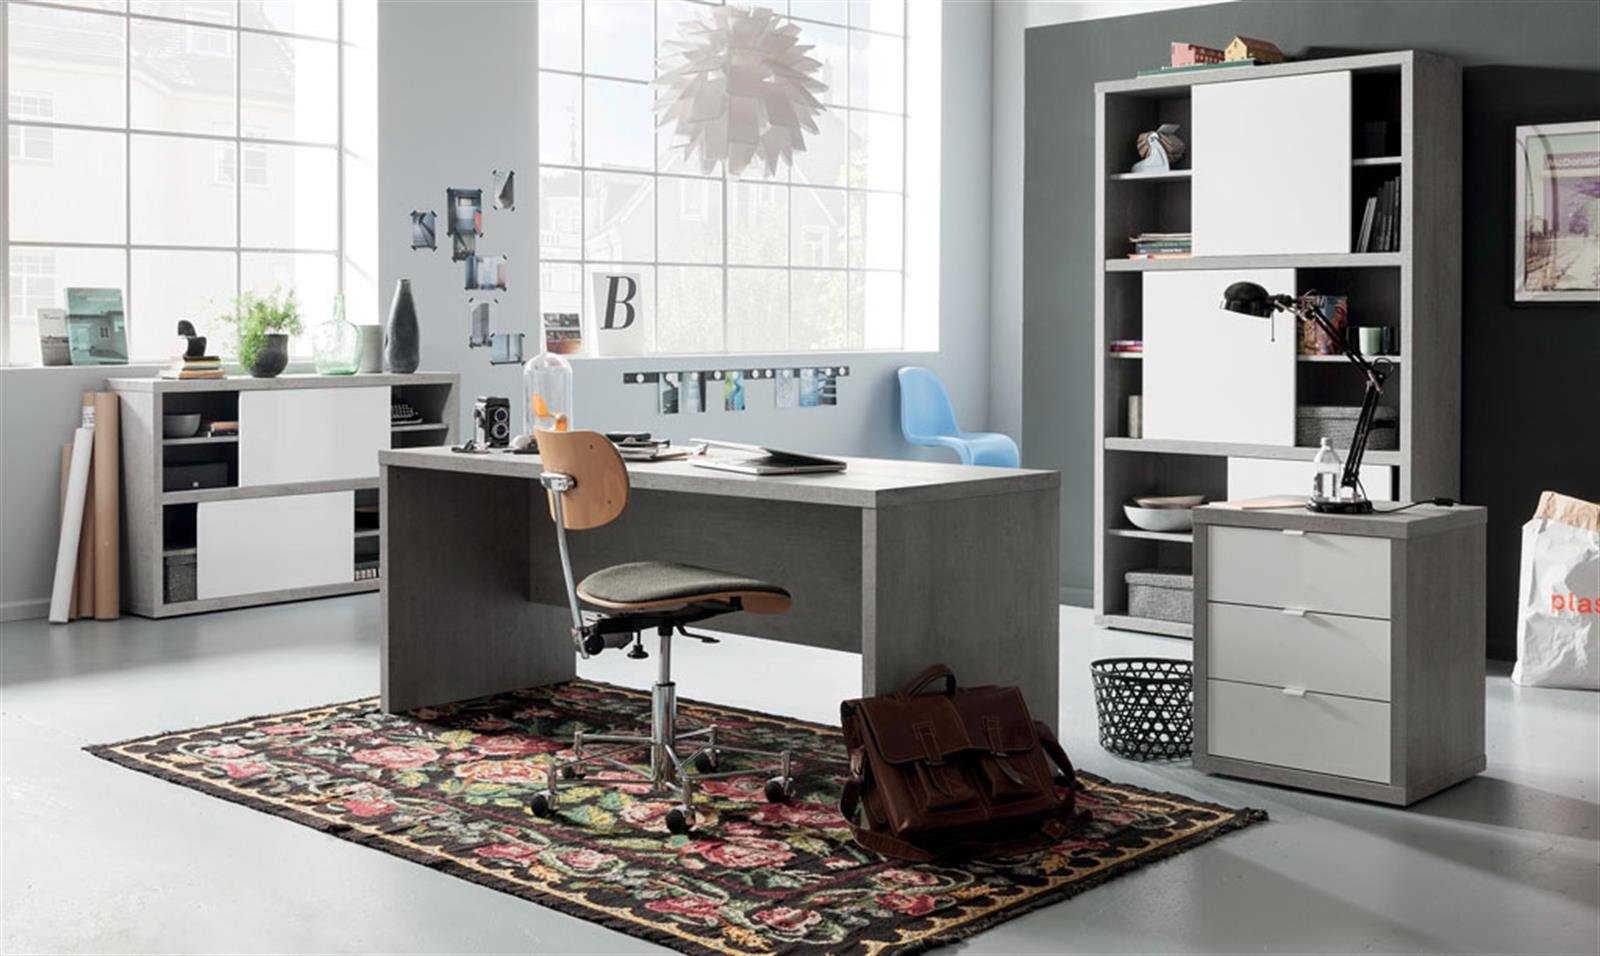 conforama hardware furnitures and equipement for business premises editus. Black Bedroom Furniture Sets. Home Design Ideas